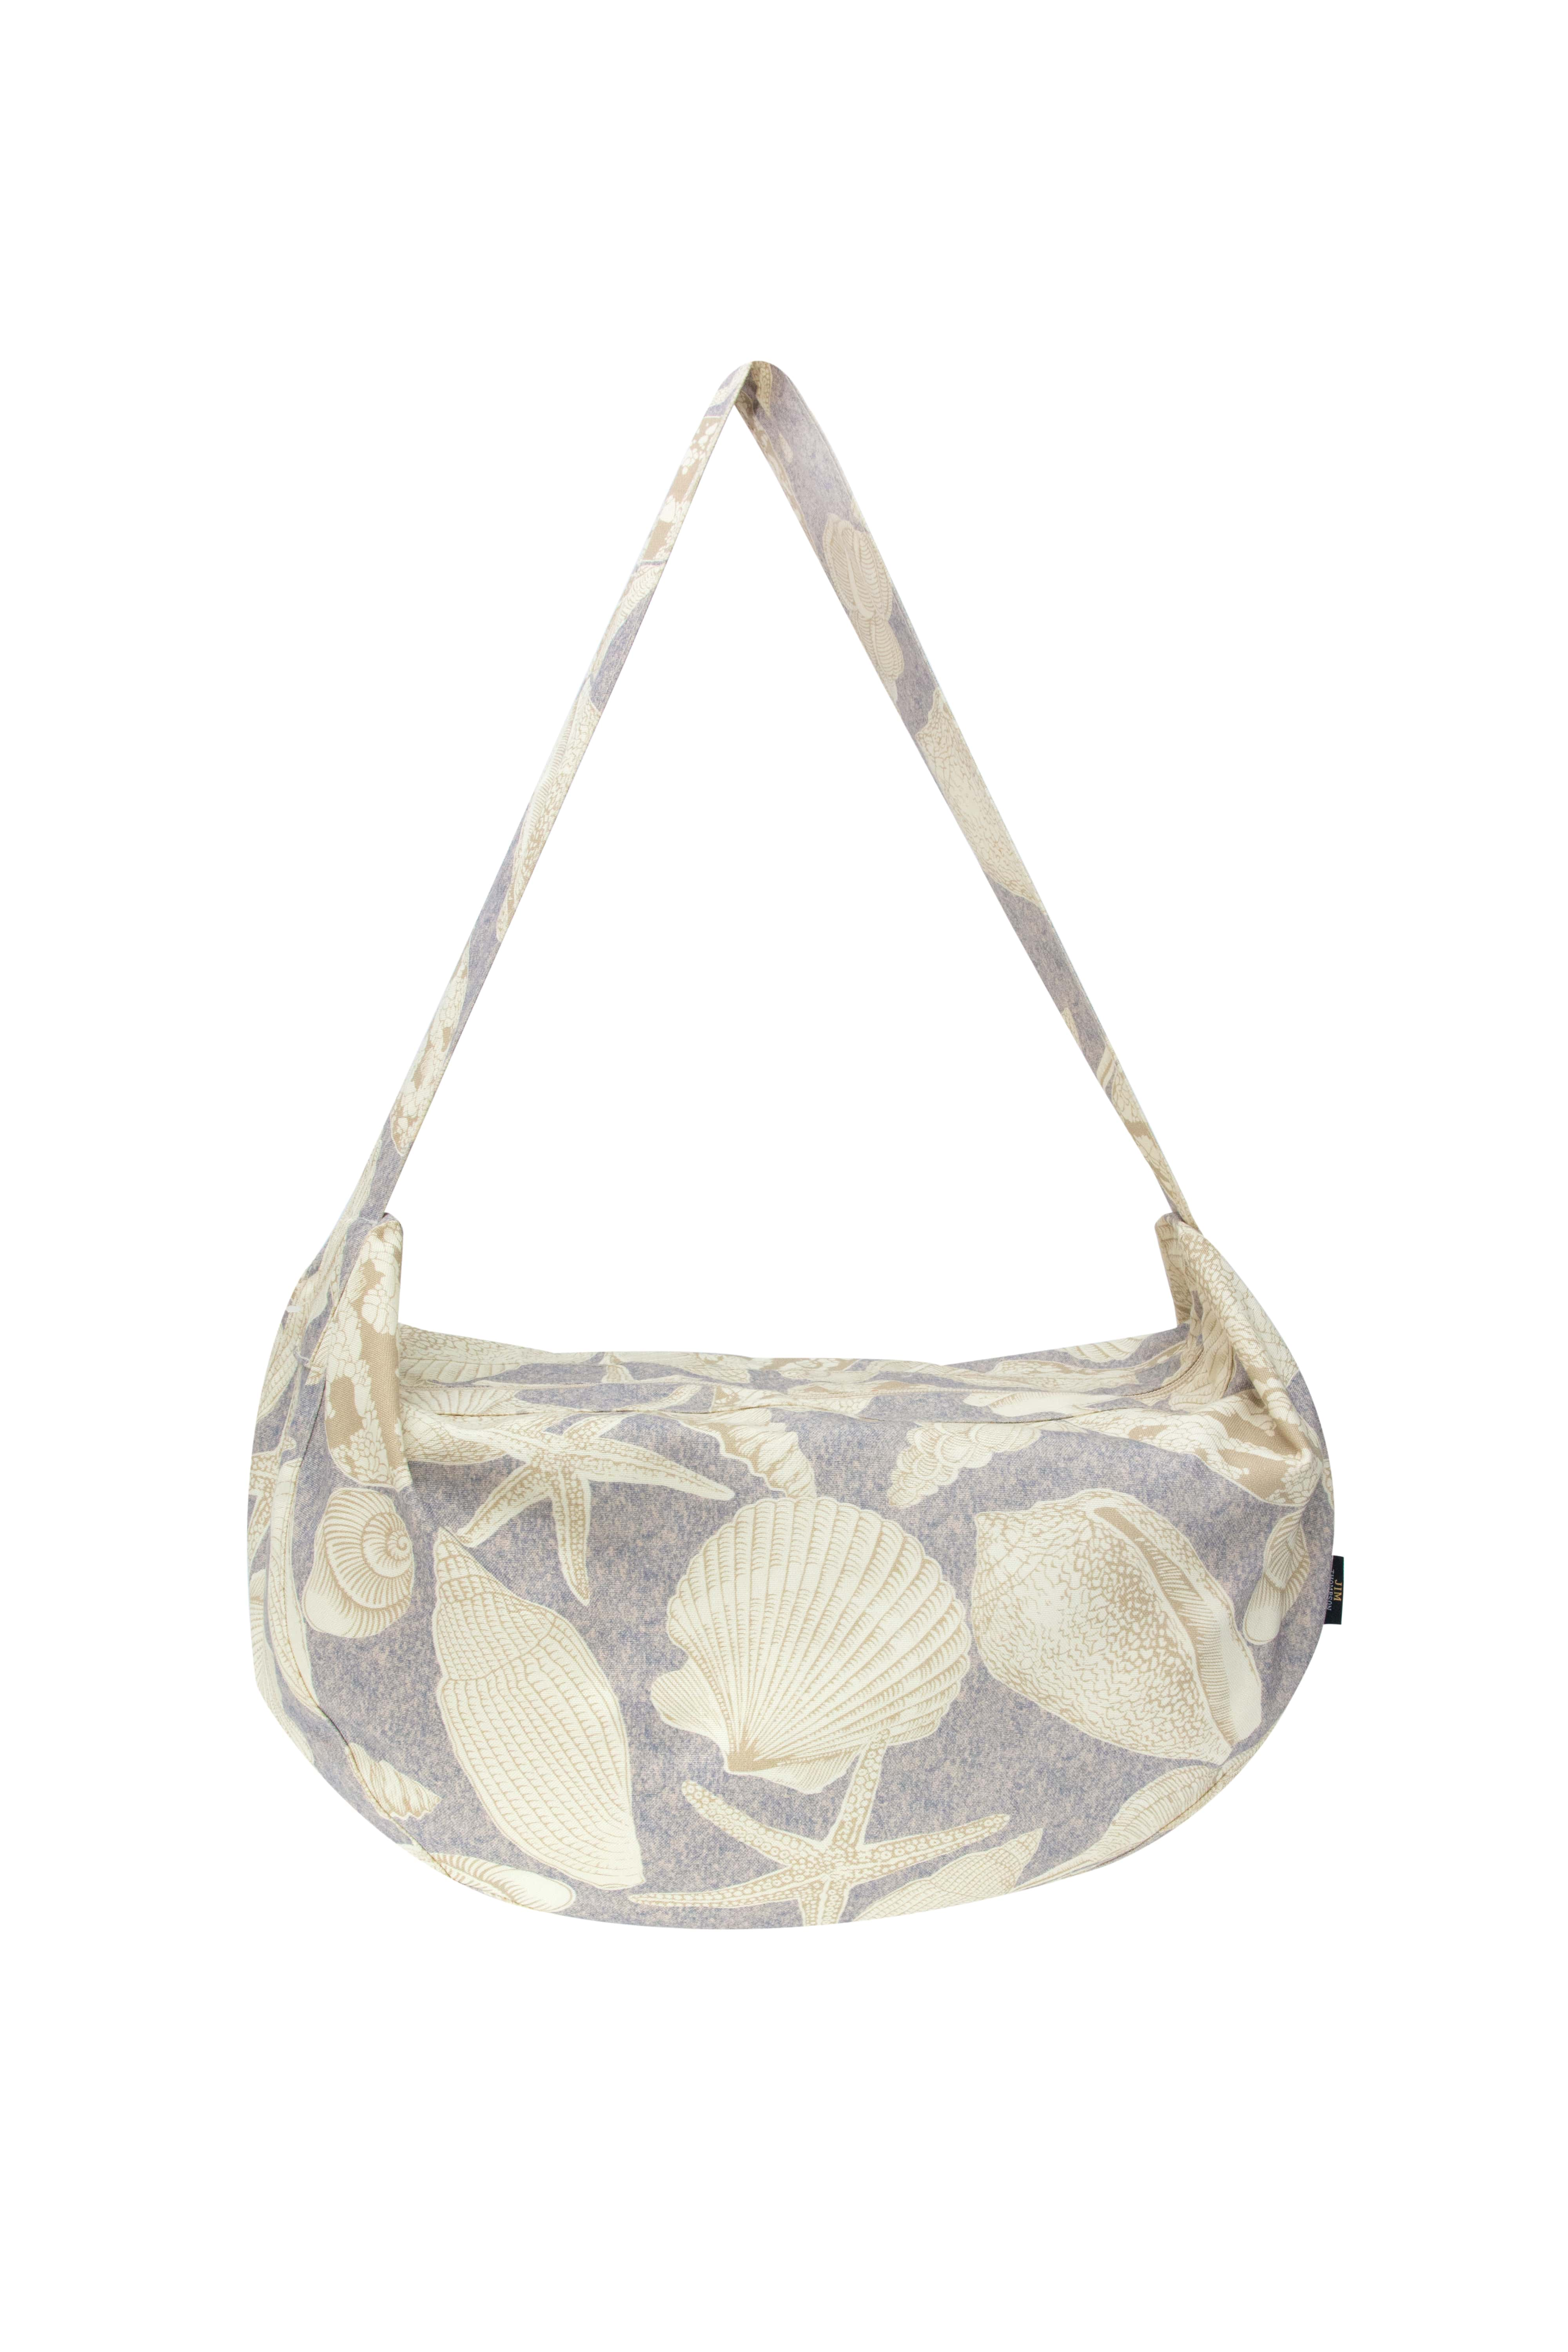 Bolso Jim Thompson estrellas de mar